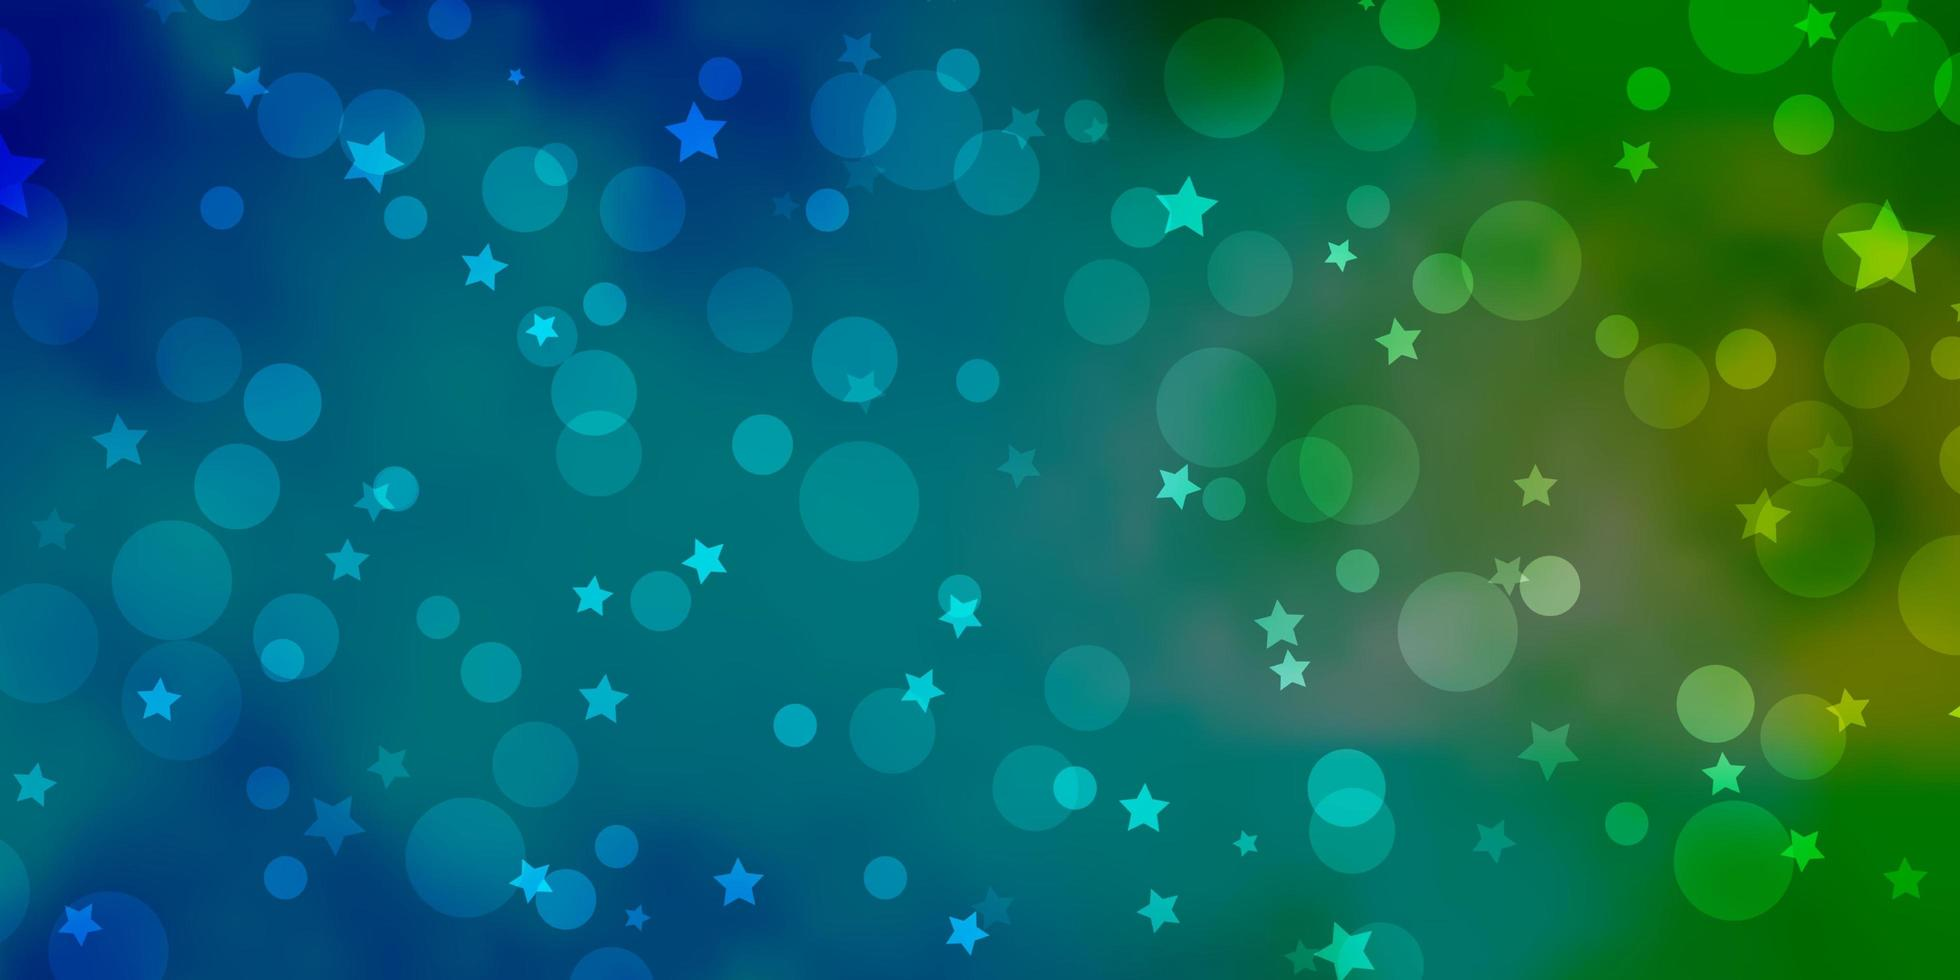 Blue and green texture with circles, stars. vector